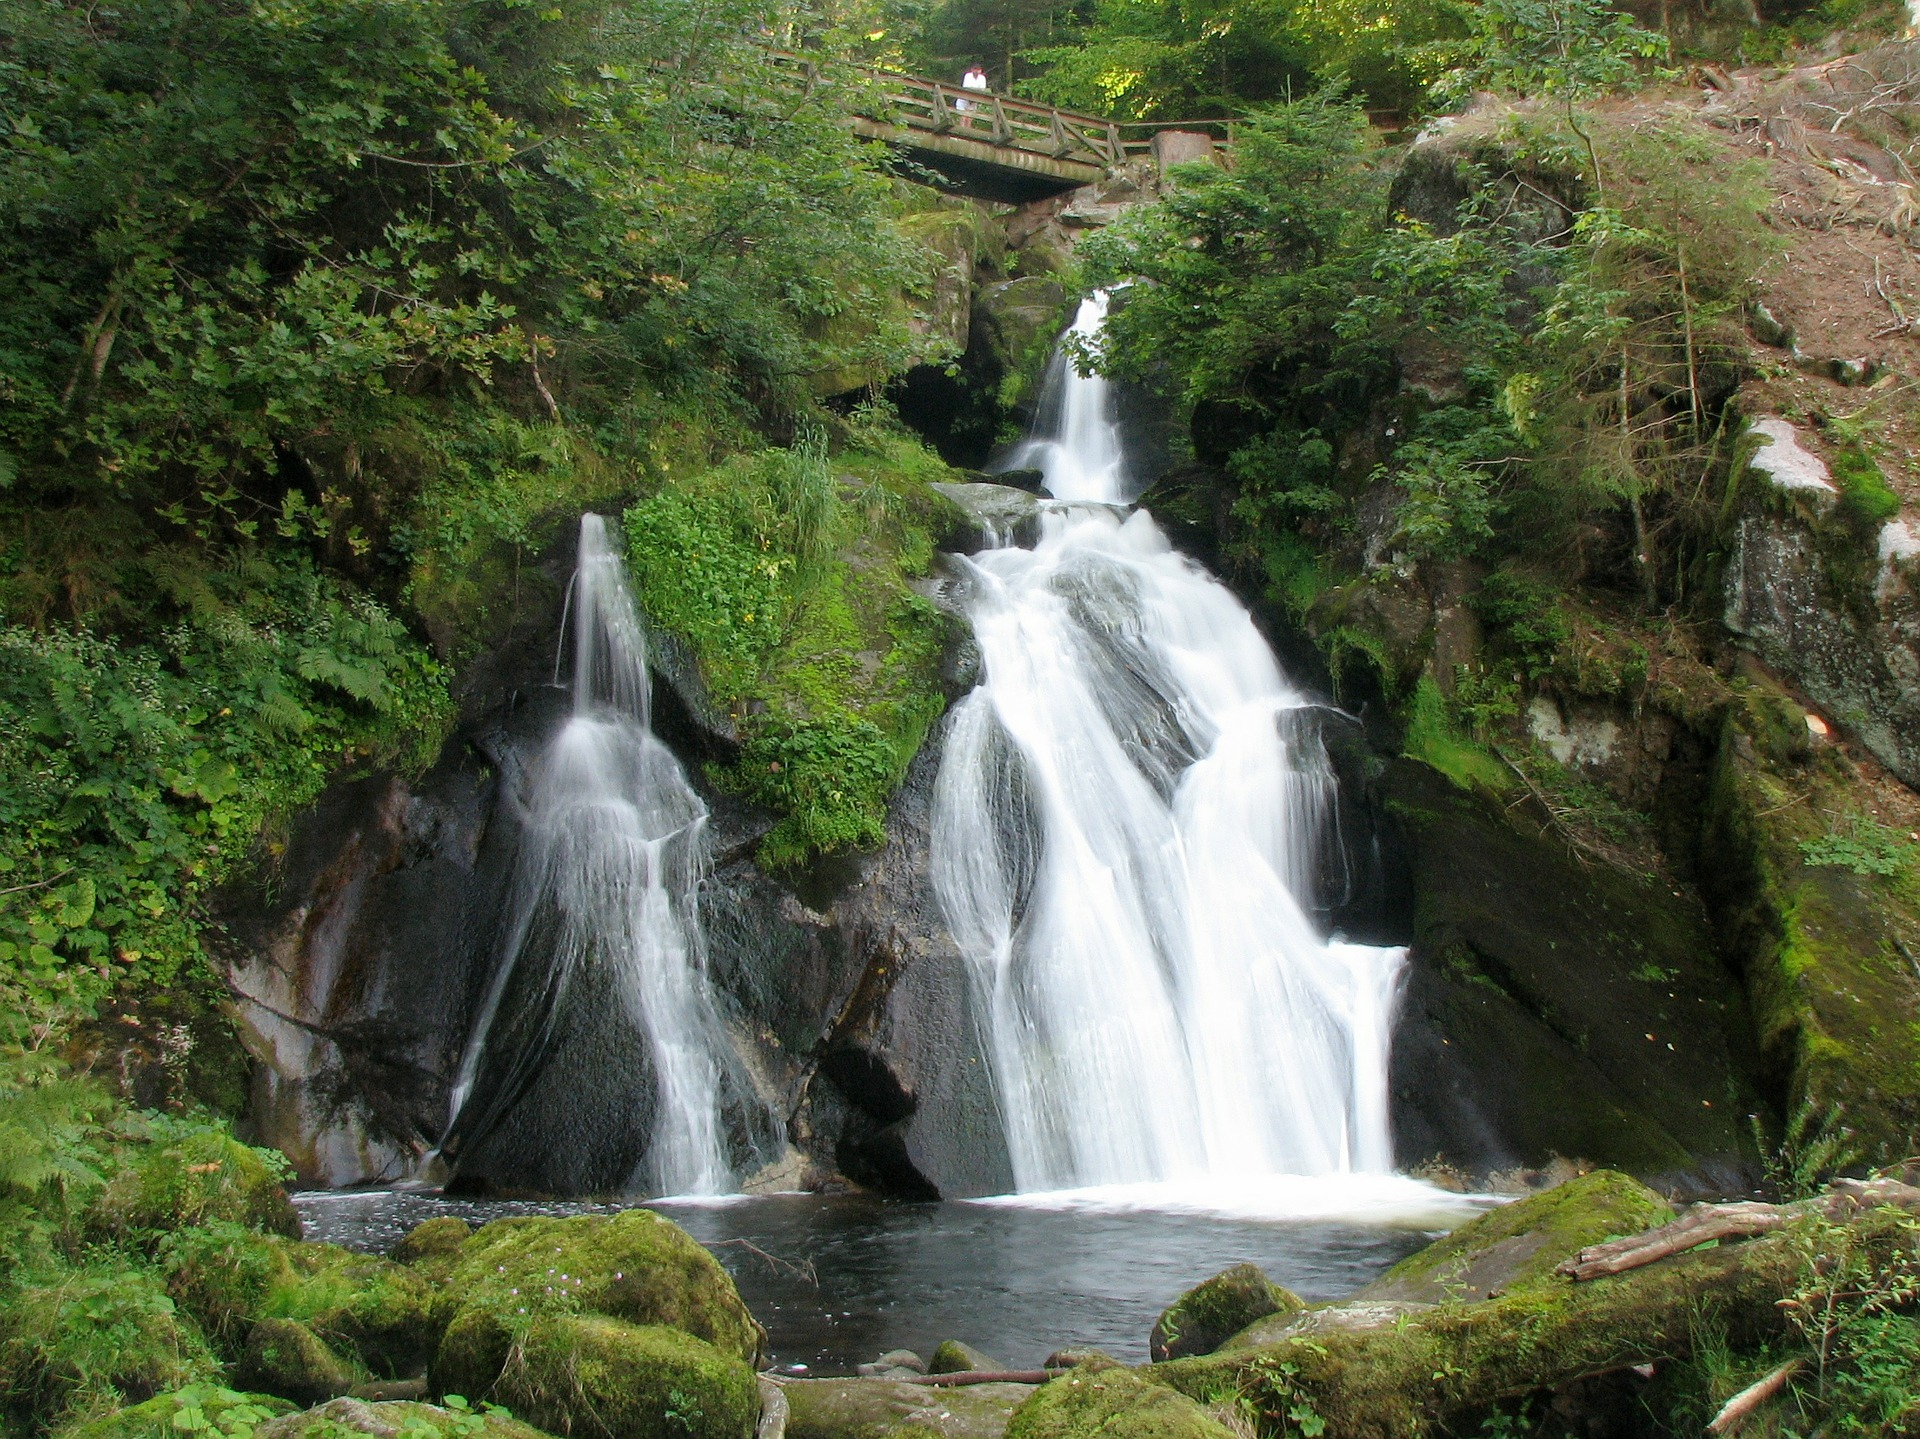 Image of the Triberg Waterfall